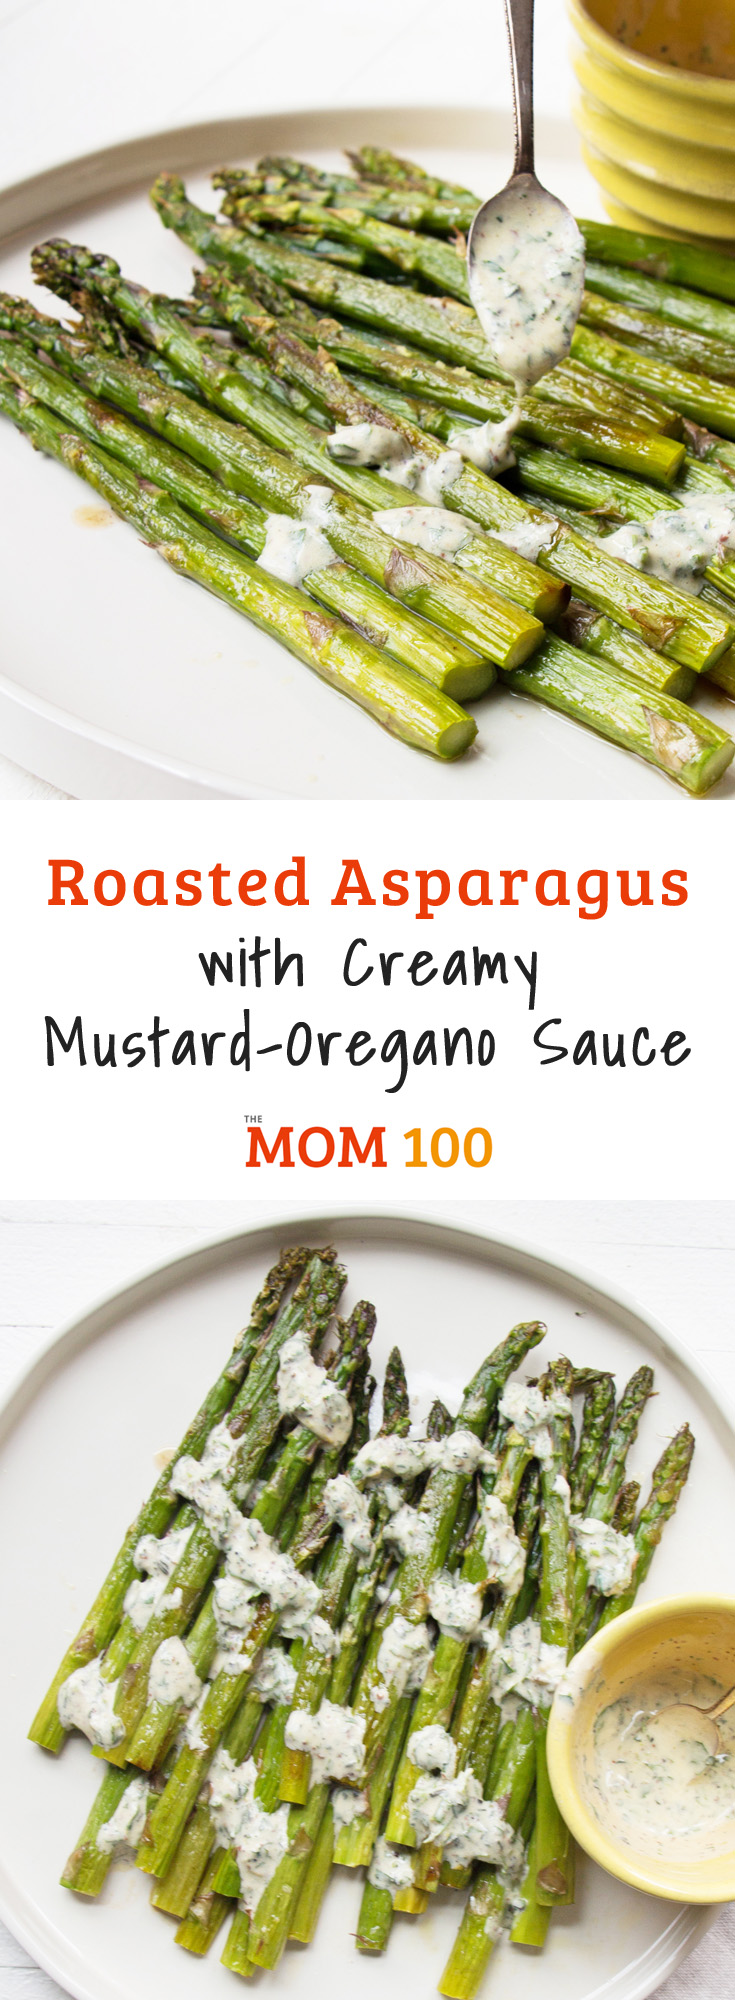 Roasted Asparagus with Creamy Mustard-Oregano Sauce